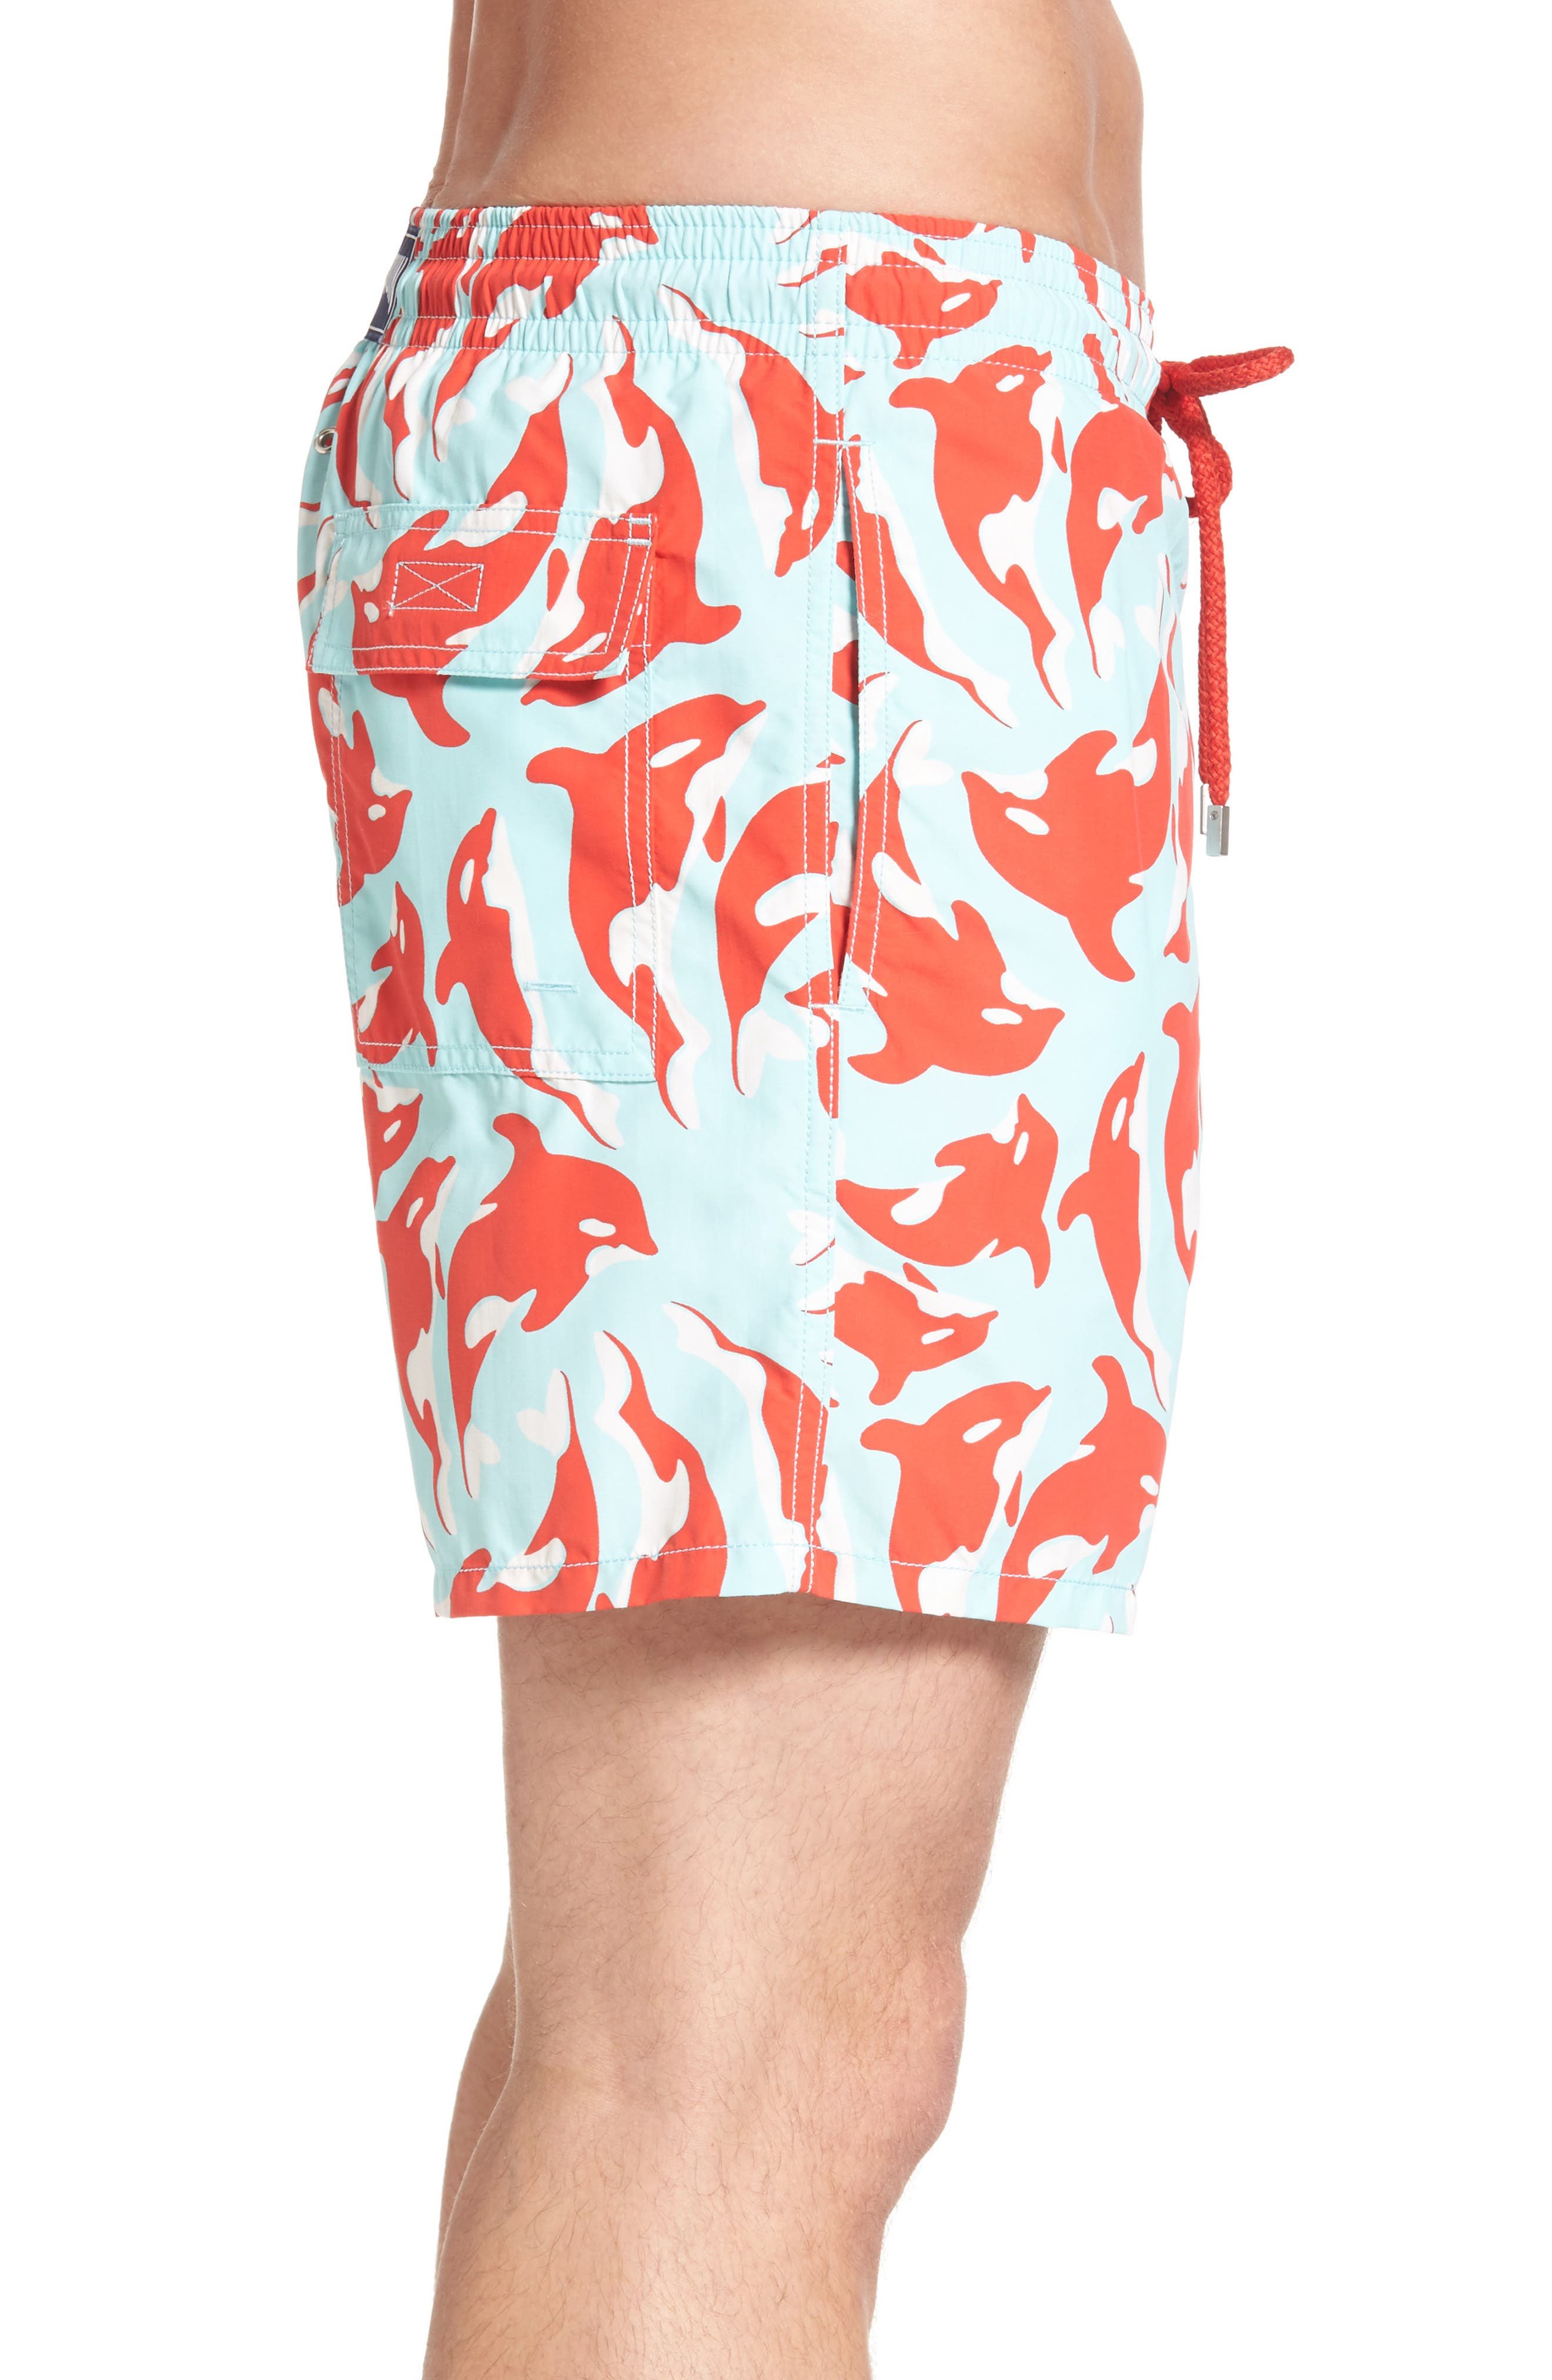 Moorea Galaks Print Swim Trunks,                             Alternate thumbnail 3, color,                             FROSTED BLUE